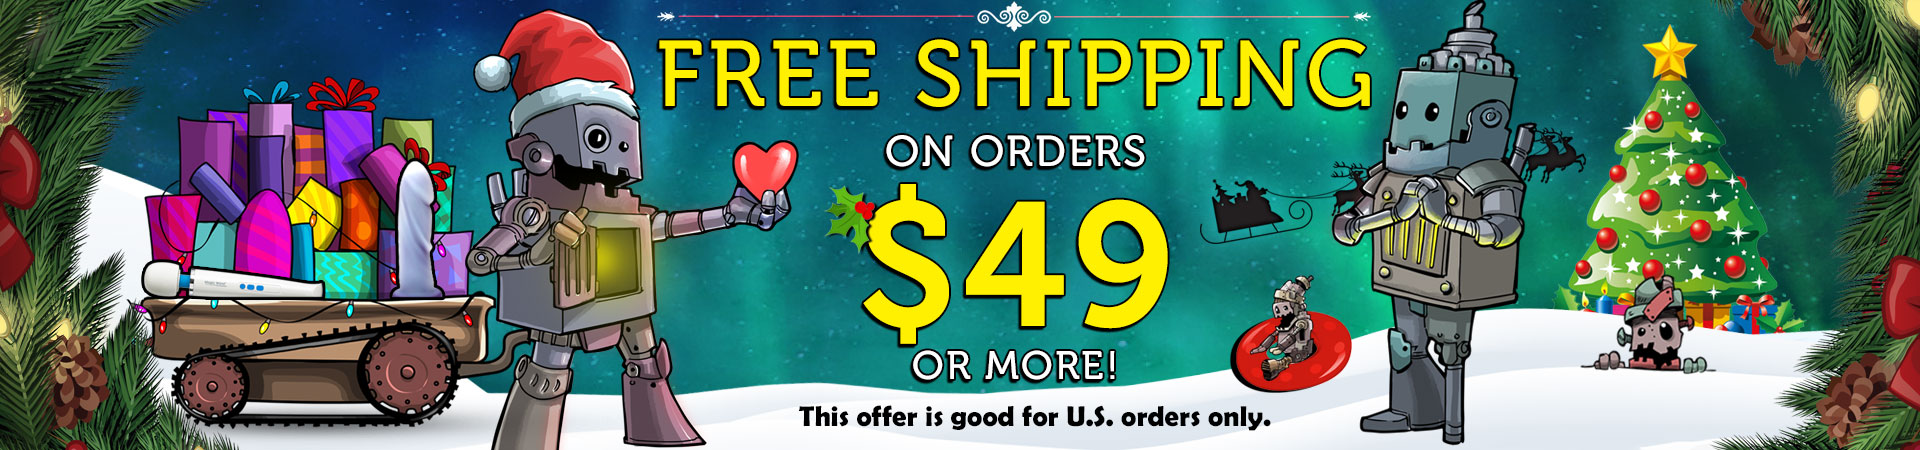 Steam Up Your Holiday Season With Lots Of Stuff That's Really Pleasin' - Free Shipping On Orders $49 Or More!